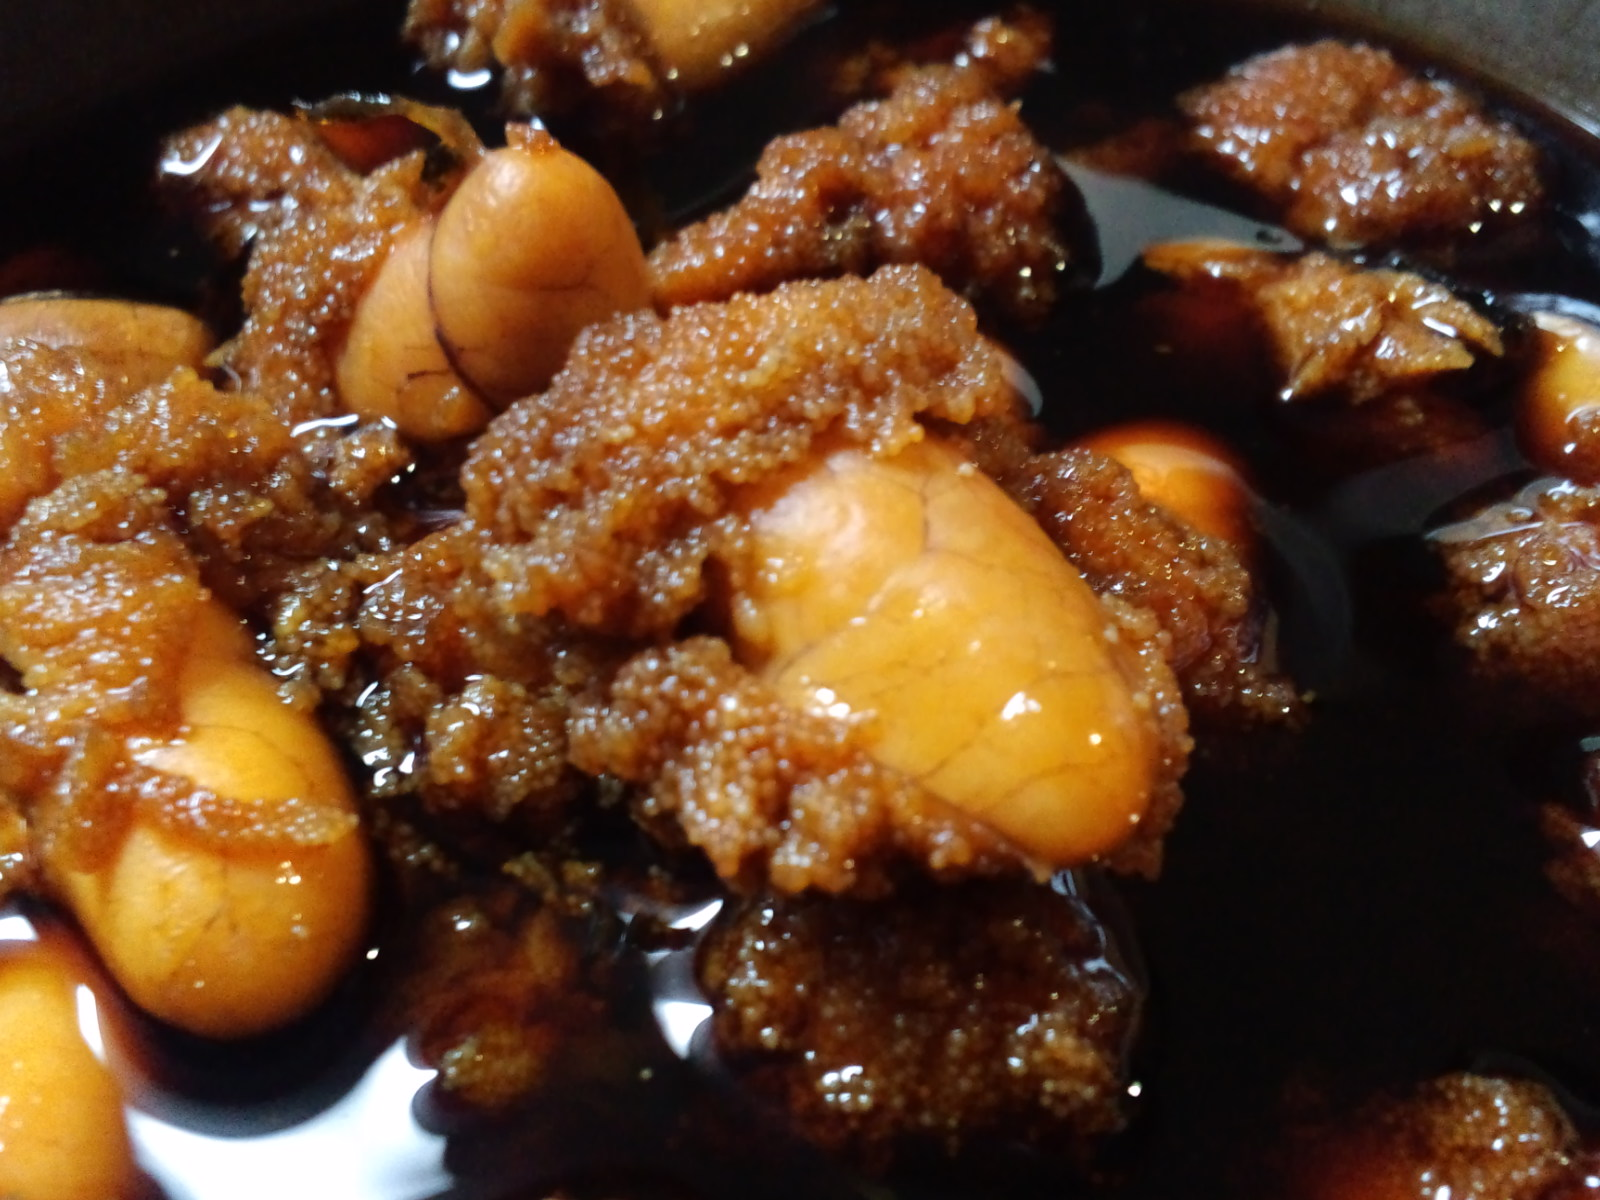 A recipe: Boiled and seasoned cod roe.